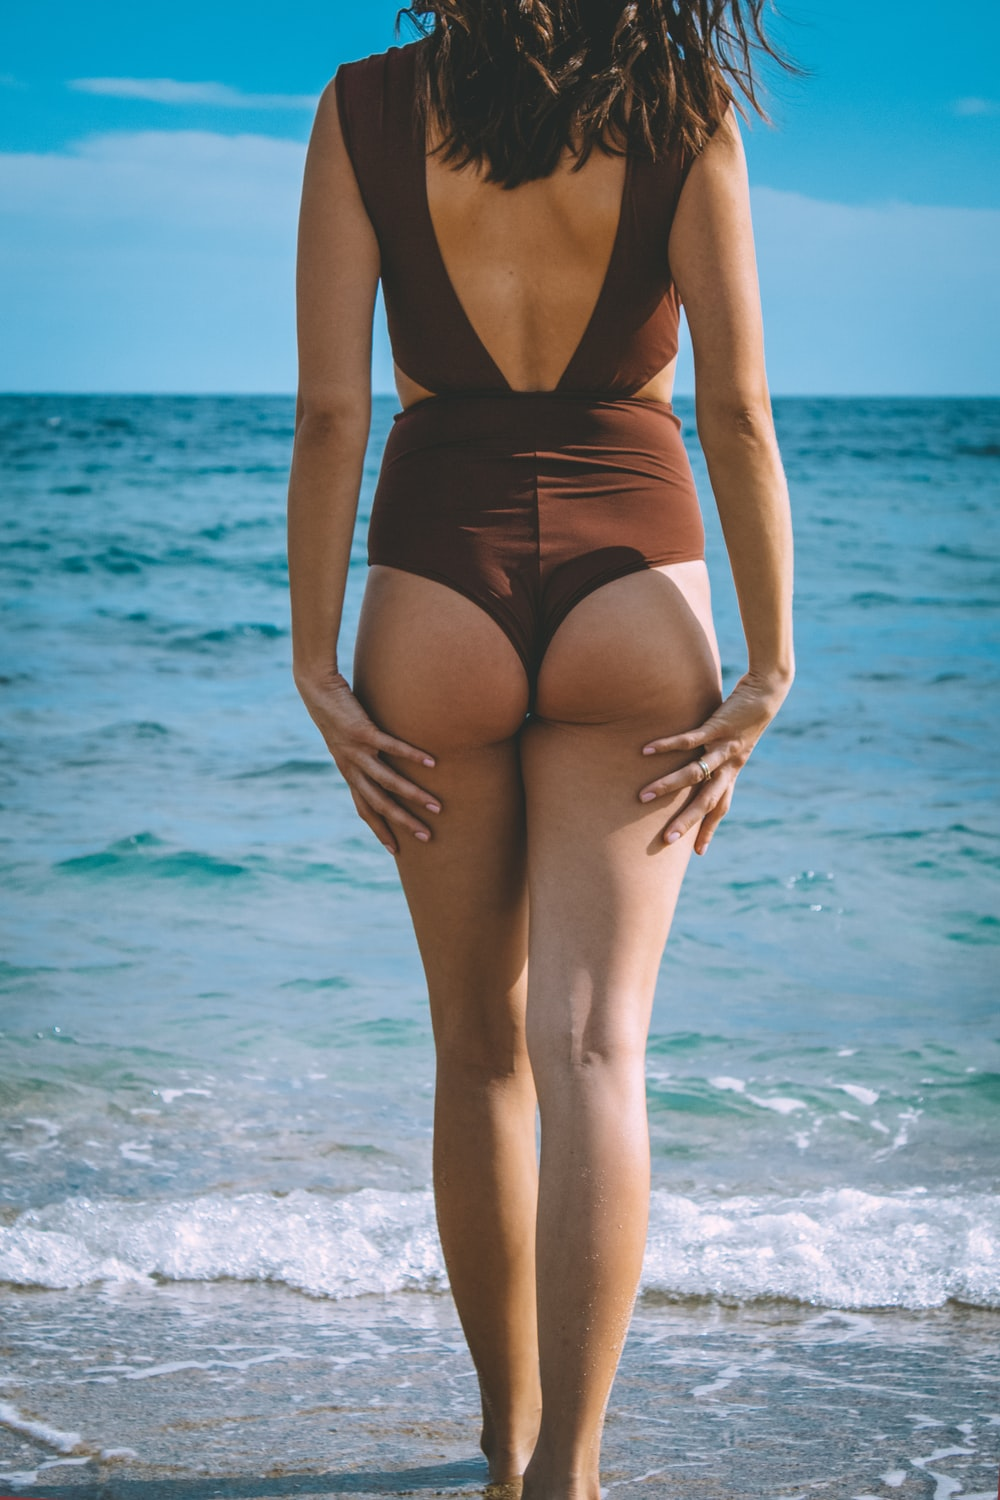 woman in black one piece swimsuit standing on beach during daytime